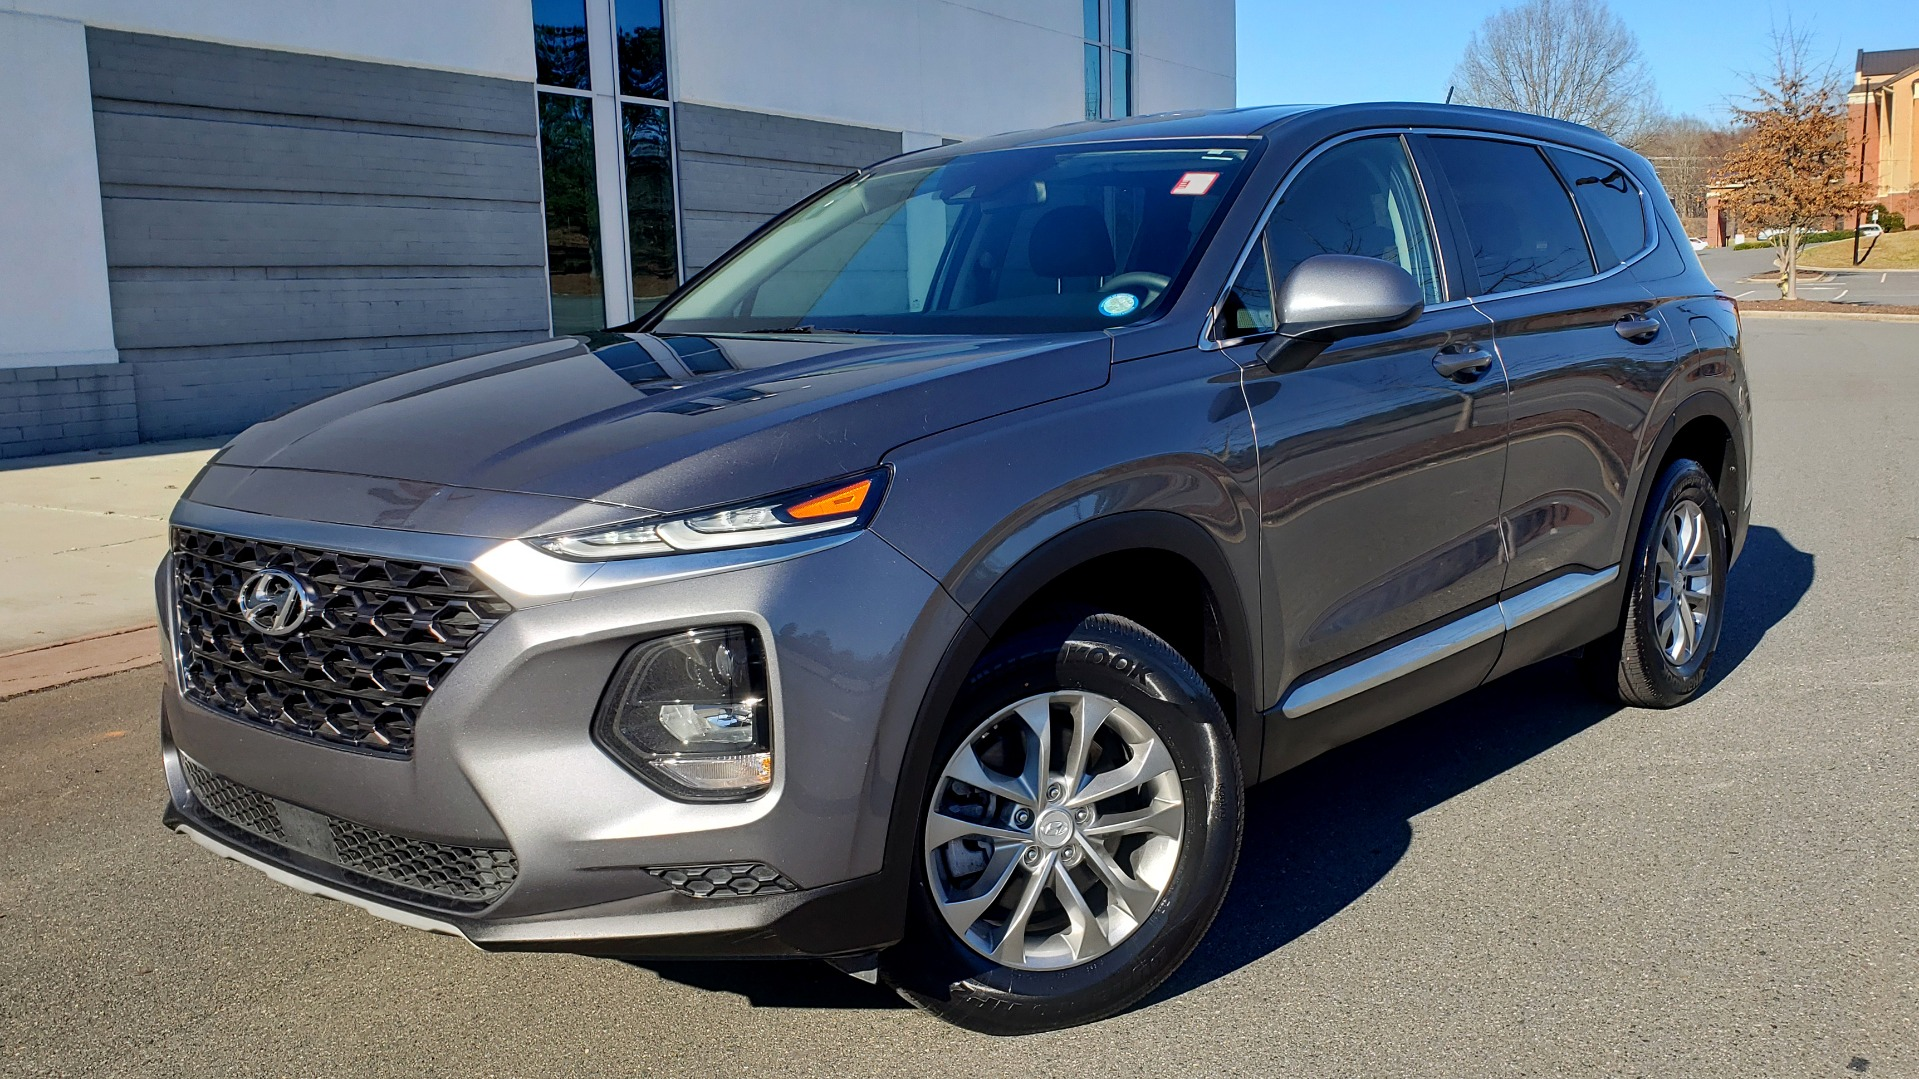 Used 2019 Hyundai SANTA FE SE / 2.4L 4-CYL / 8-SPD AUTO / BLIND SPOT / LANE KEEP ASSIST for sale Sold at Formula Imports in Charlotte NC 28227 1